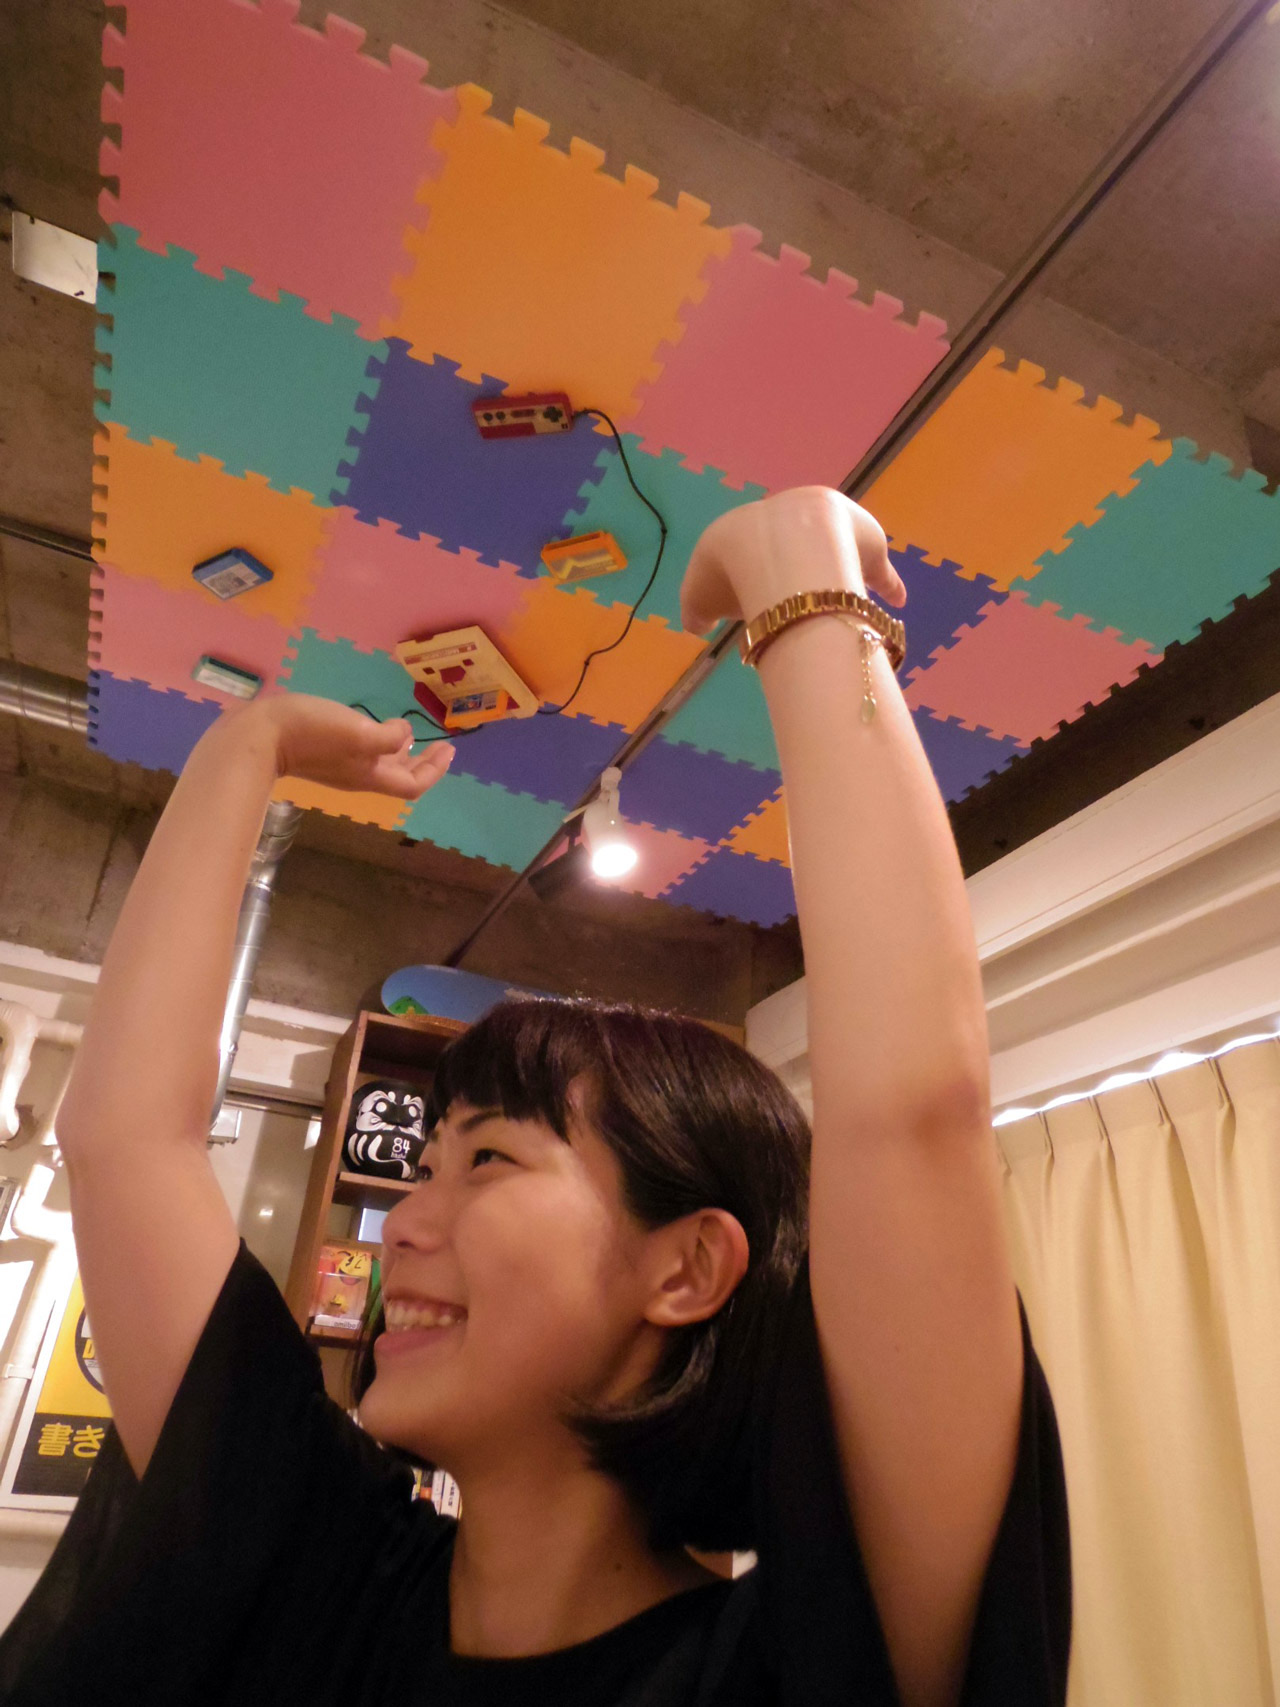 kanae holding up the ceiling